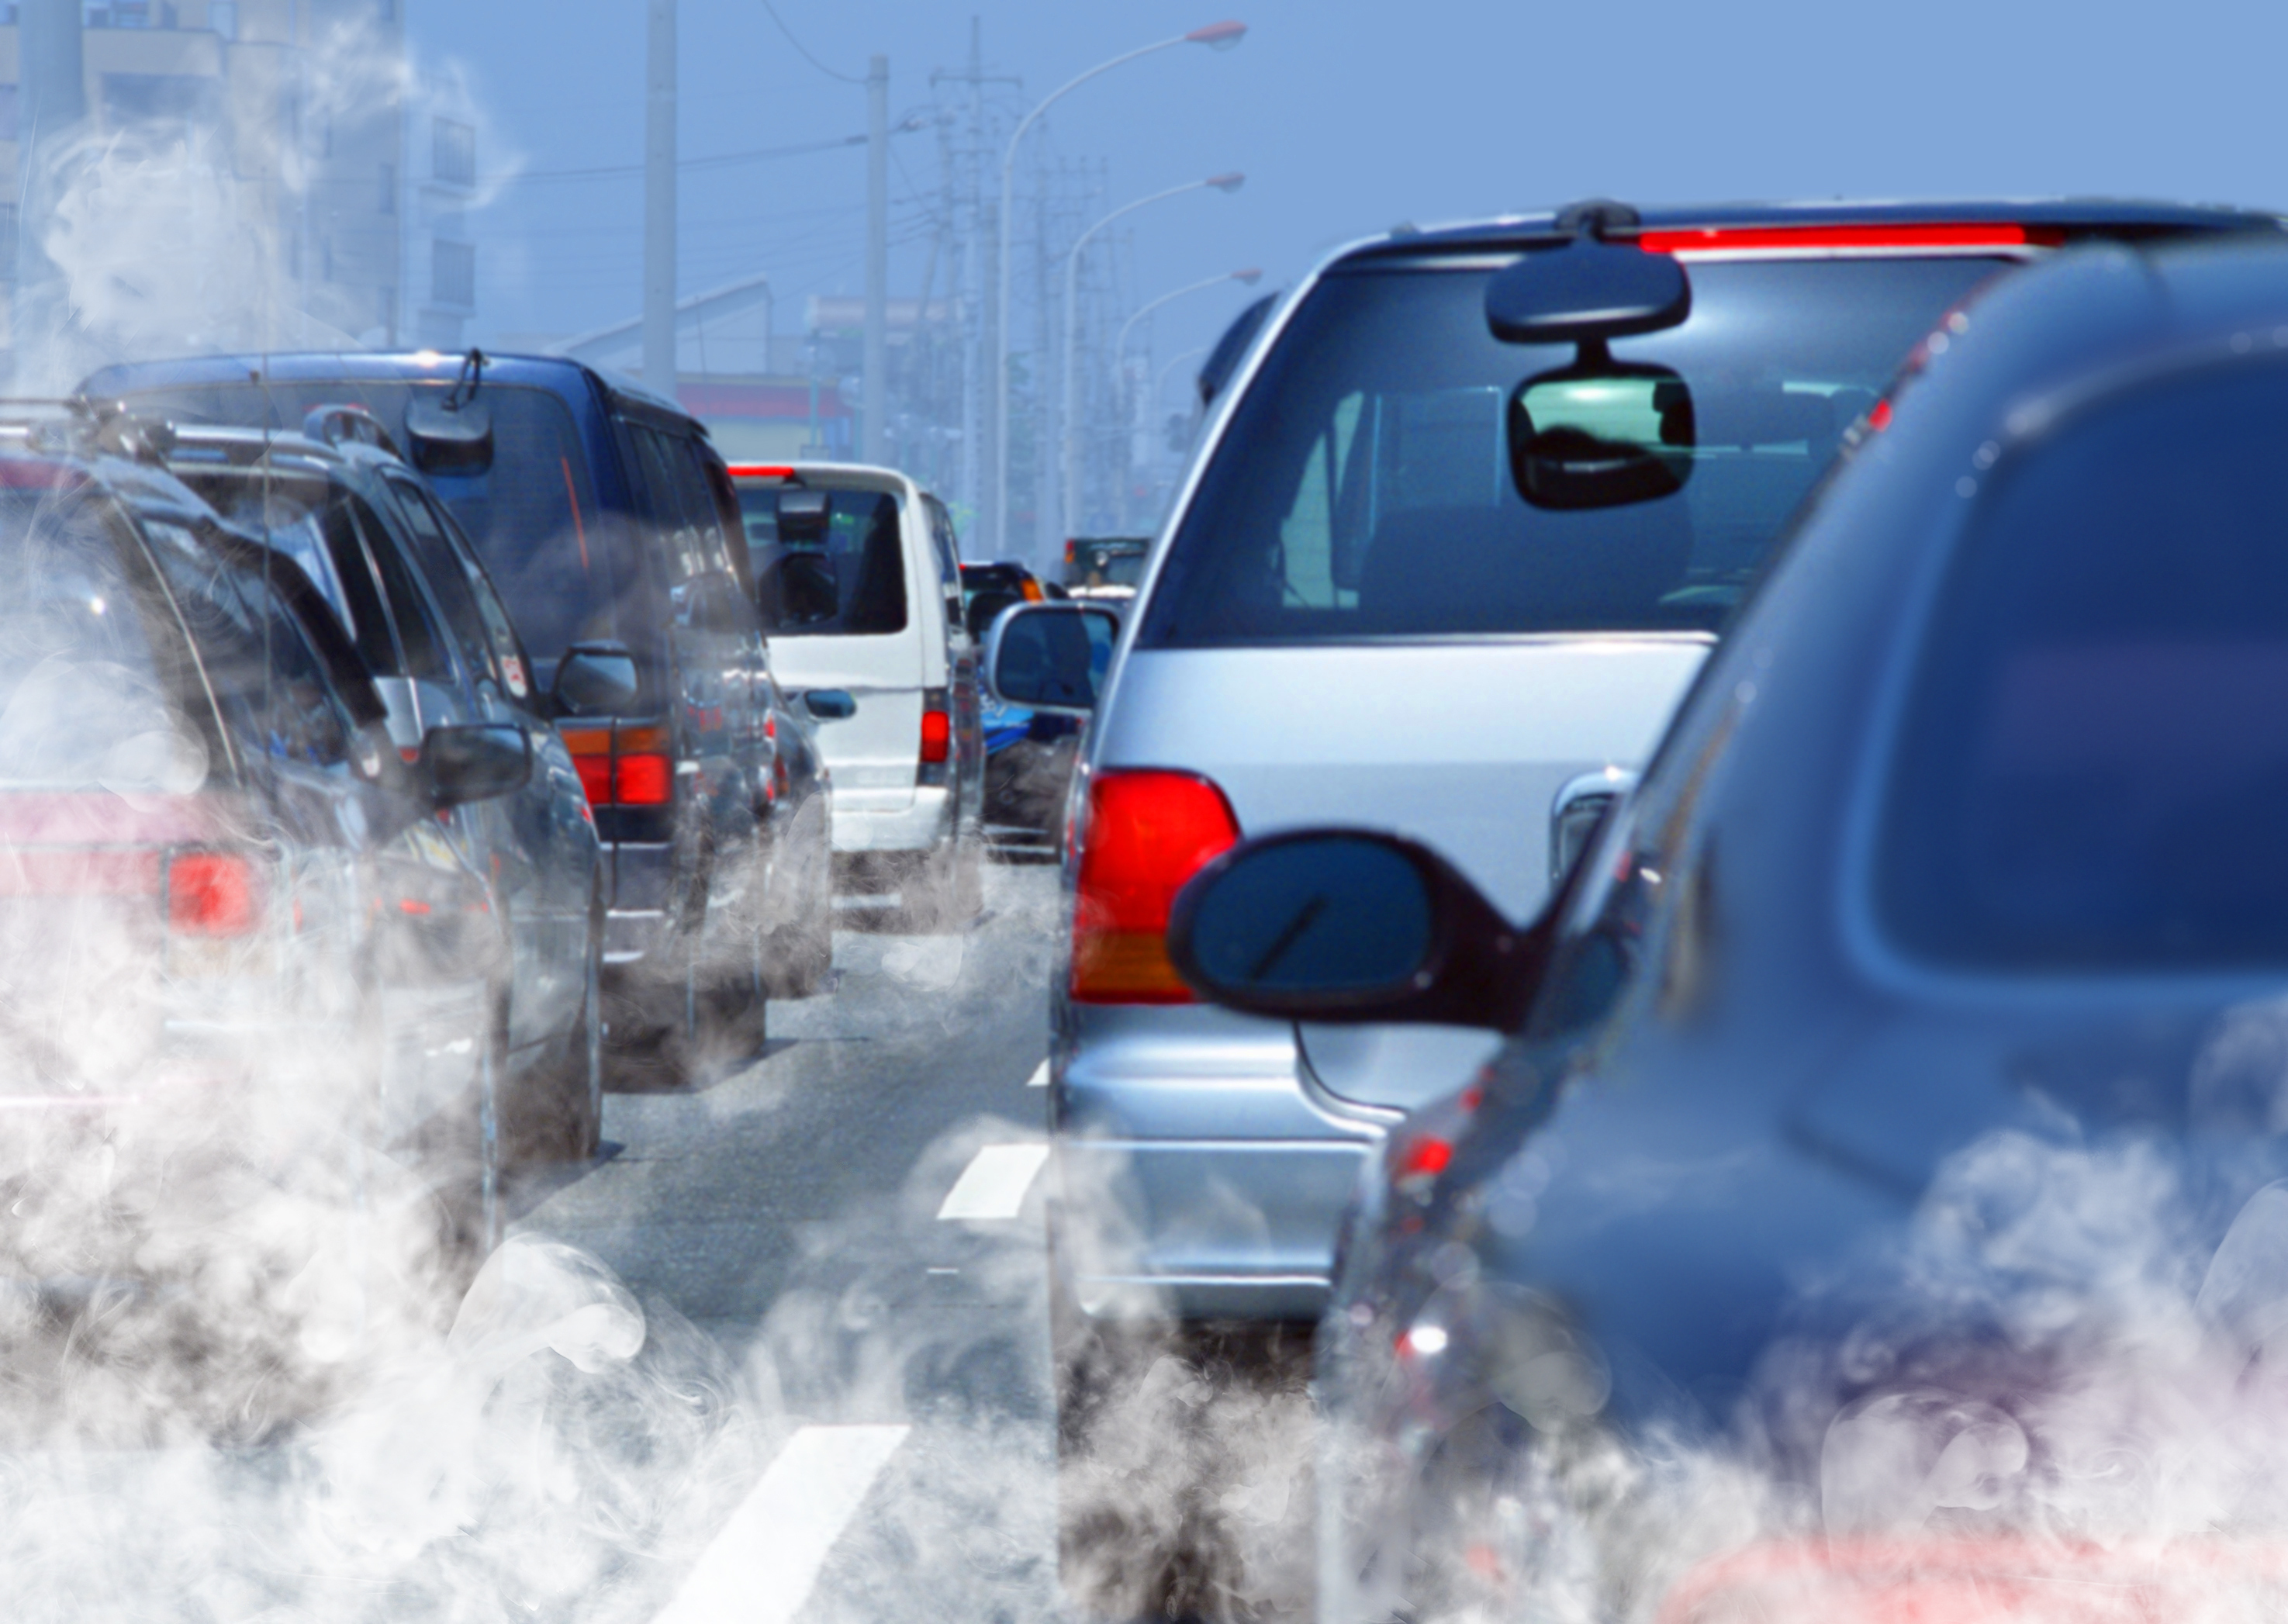 Air pollution from traffic